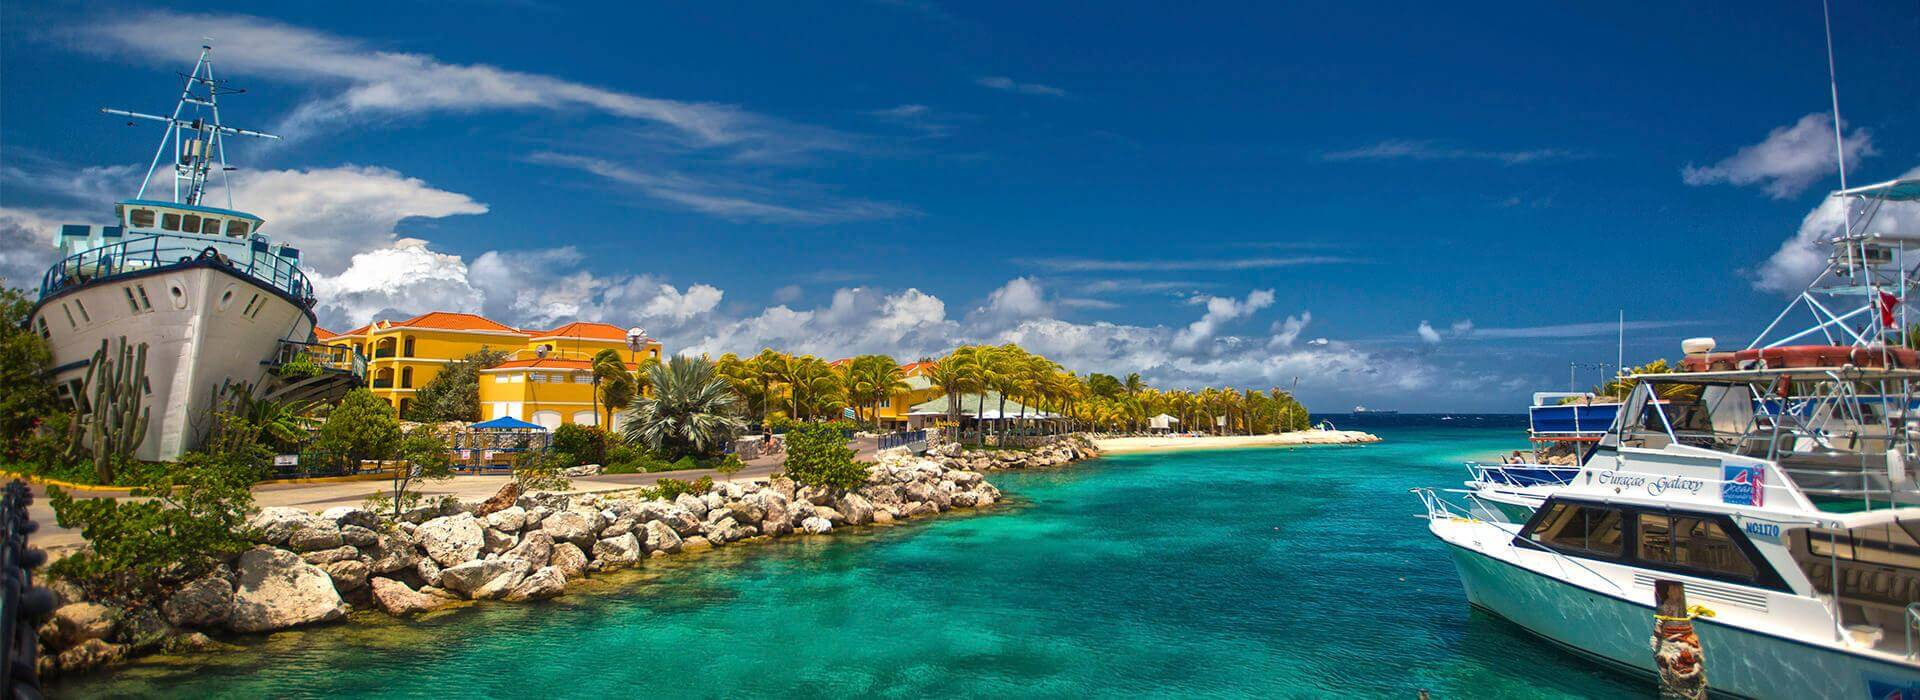 the Royal Sea Aquarium Resort in Curacao